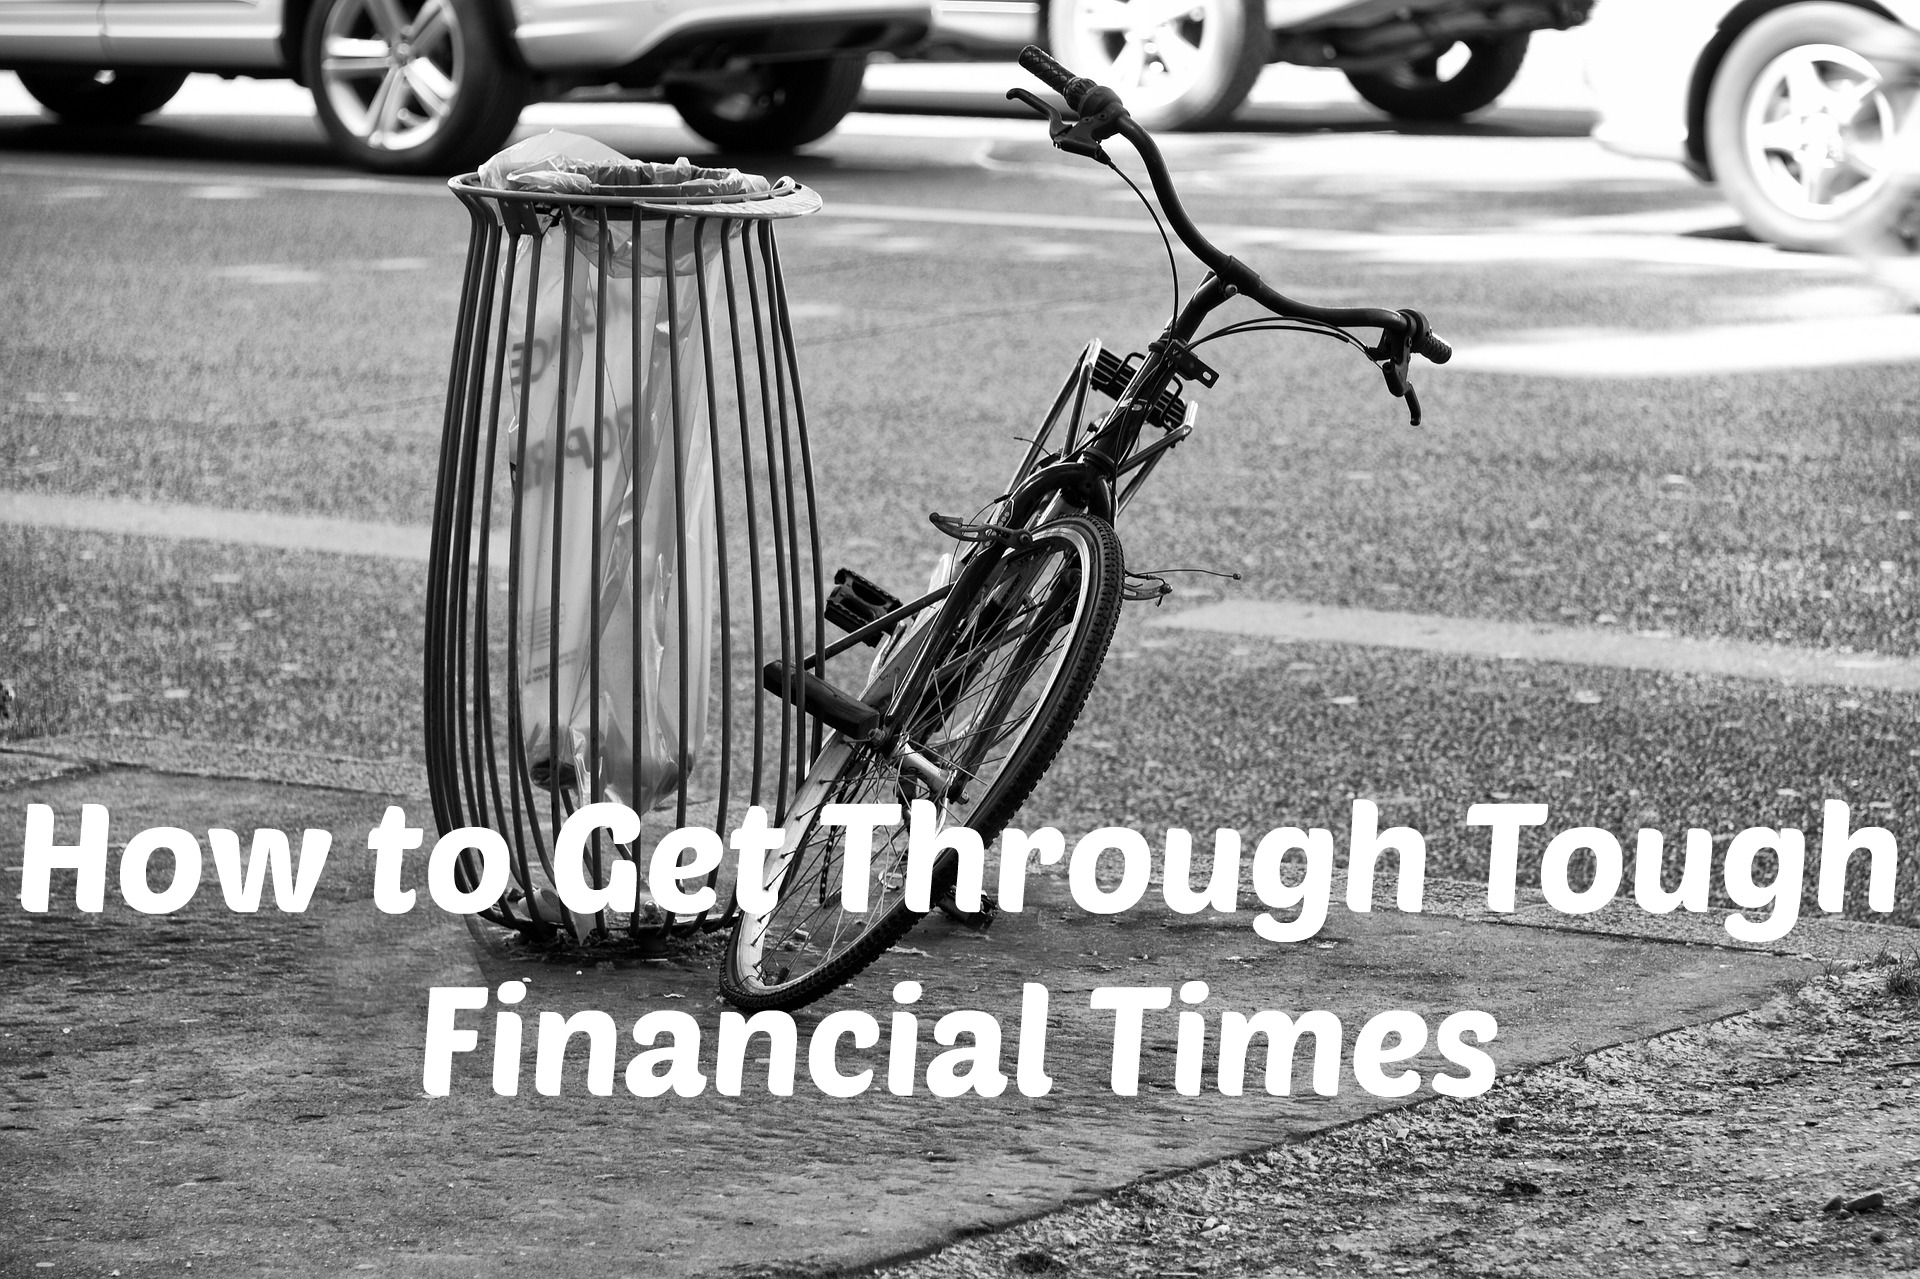 There are unexpected events in life that causes financial difficulties.Here are 5 ways get through tough financial times with your wallet intact.